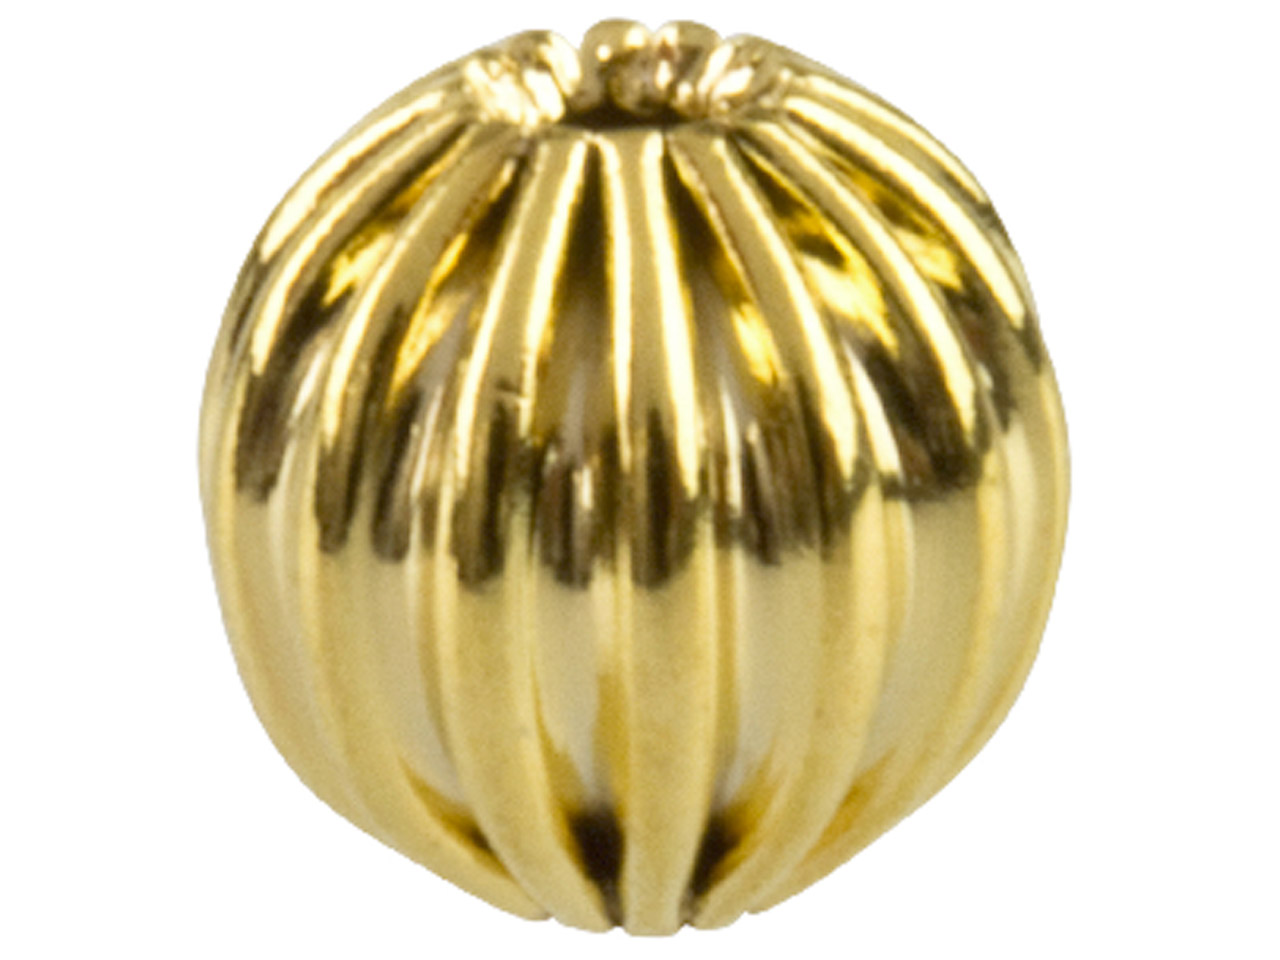 Gold Plated Corrugated Round Beads 8mm, 2 Hole, Pack of 10